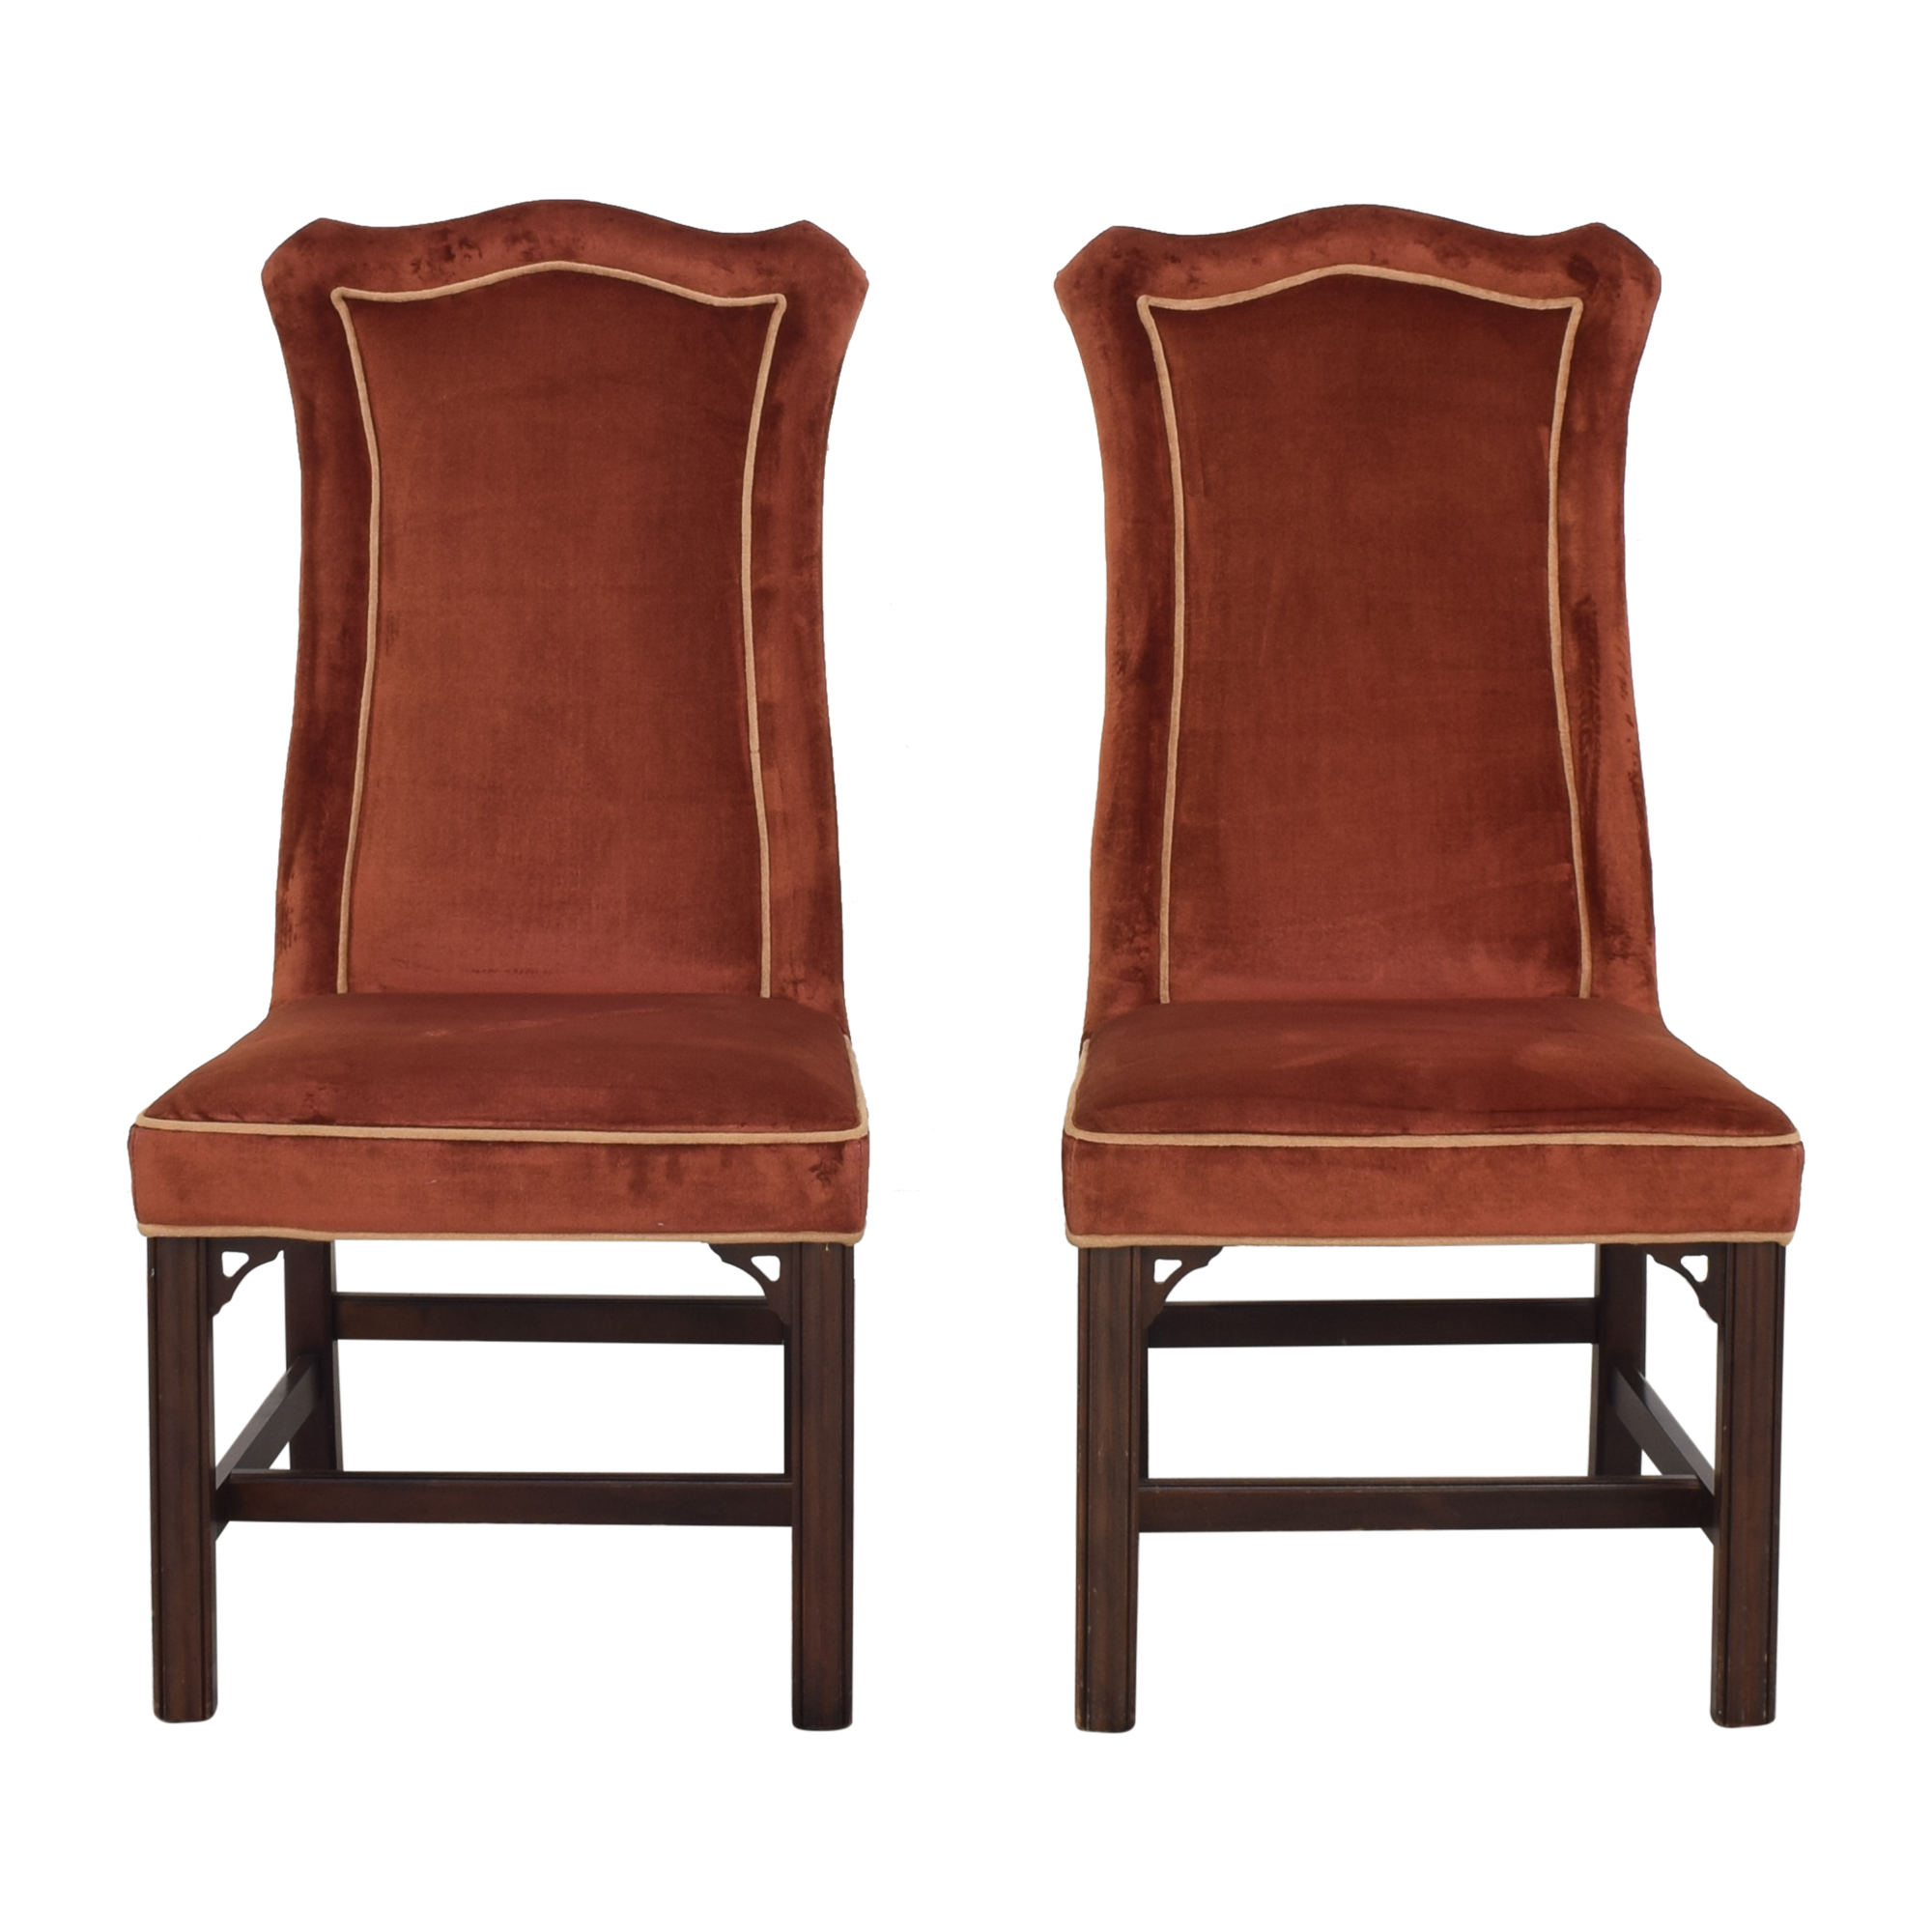 shop Ethan Allen Traditional Classics Upholstered Dining Chairs Ethan Allen Chairs